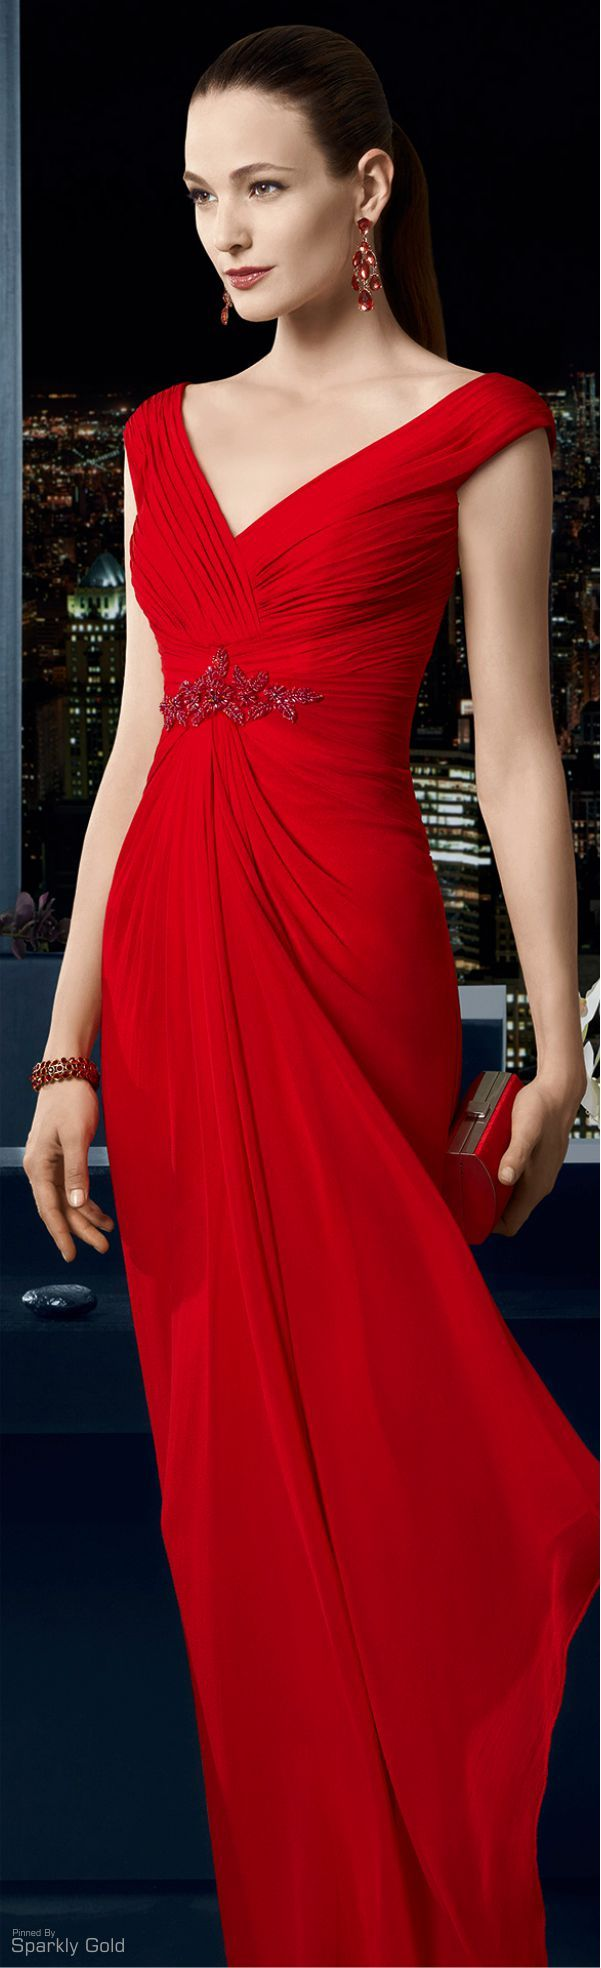 best women in red images on pinterest